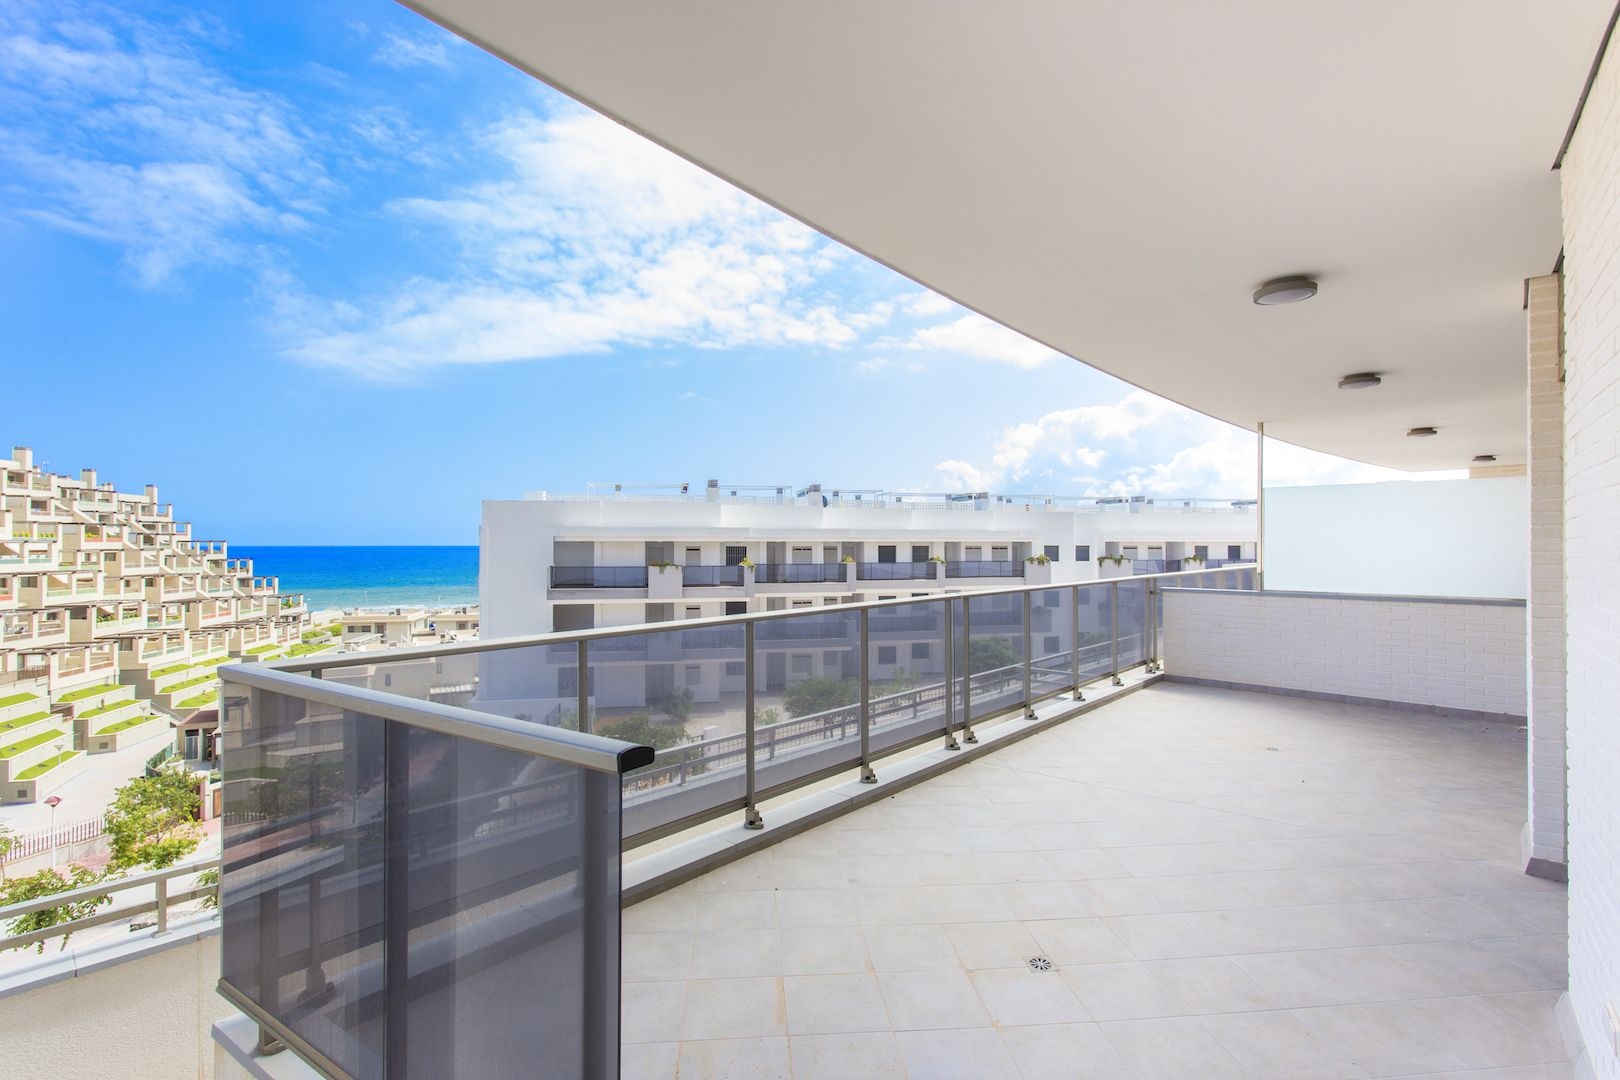 Flats and penthouses of 2, 3 and 4 bedrooms a few meters from the sea in Arenales del Sol. 7